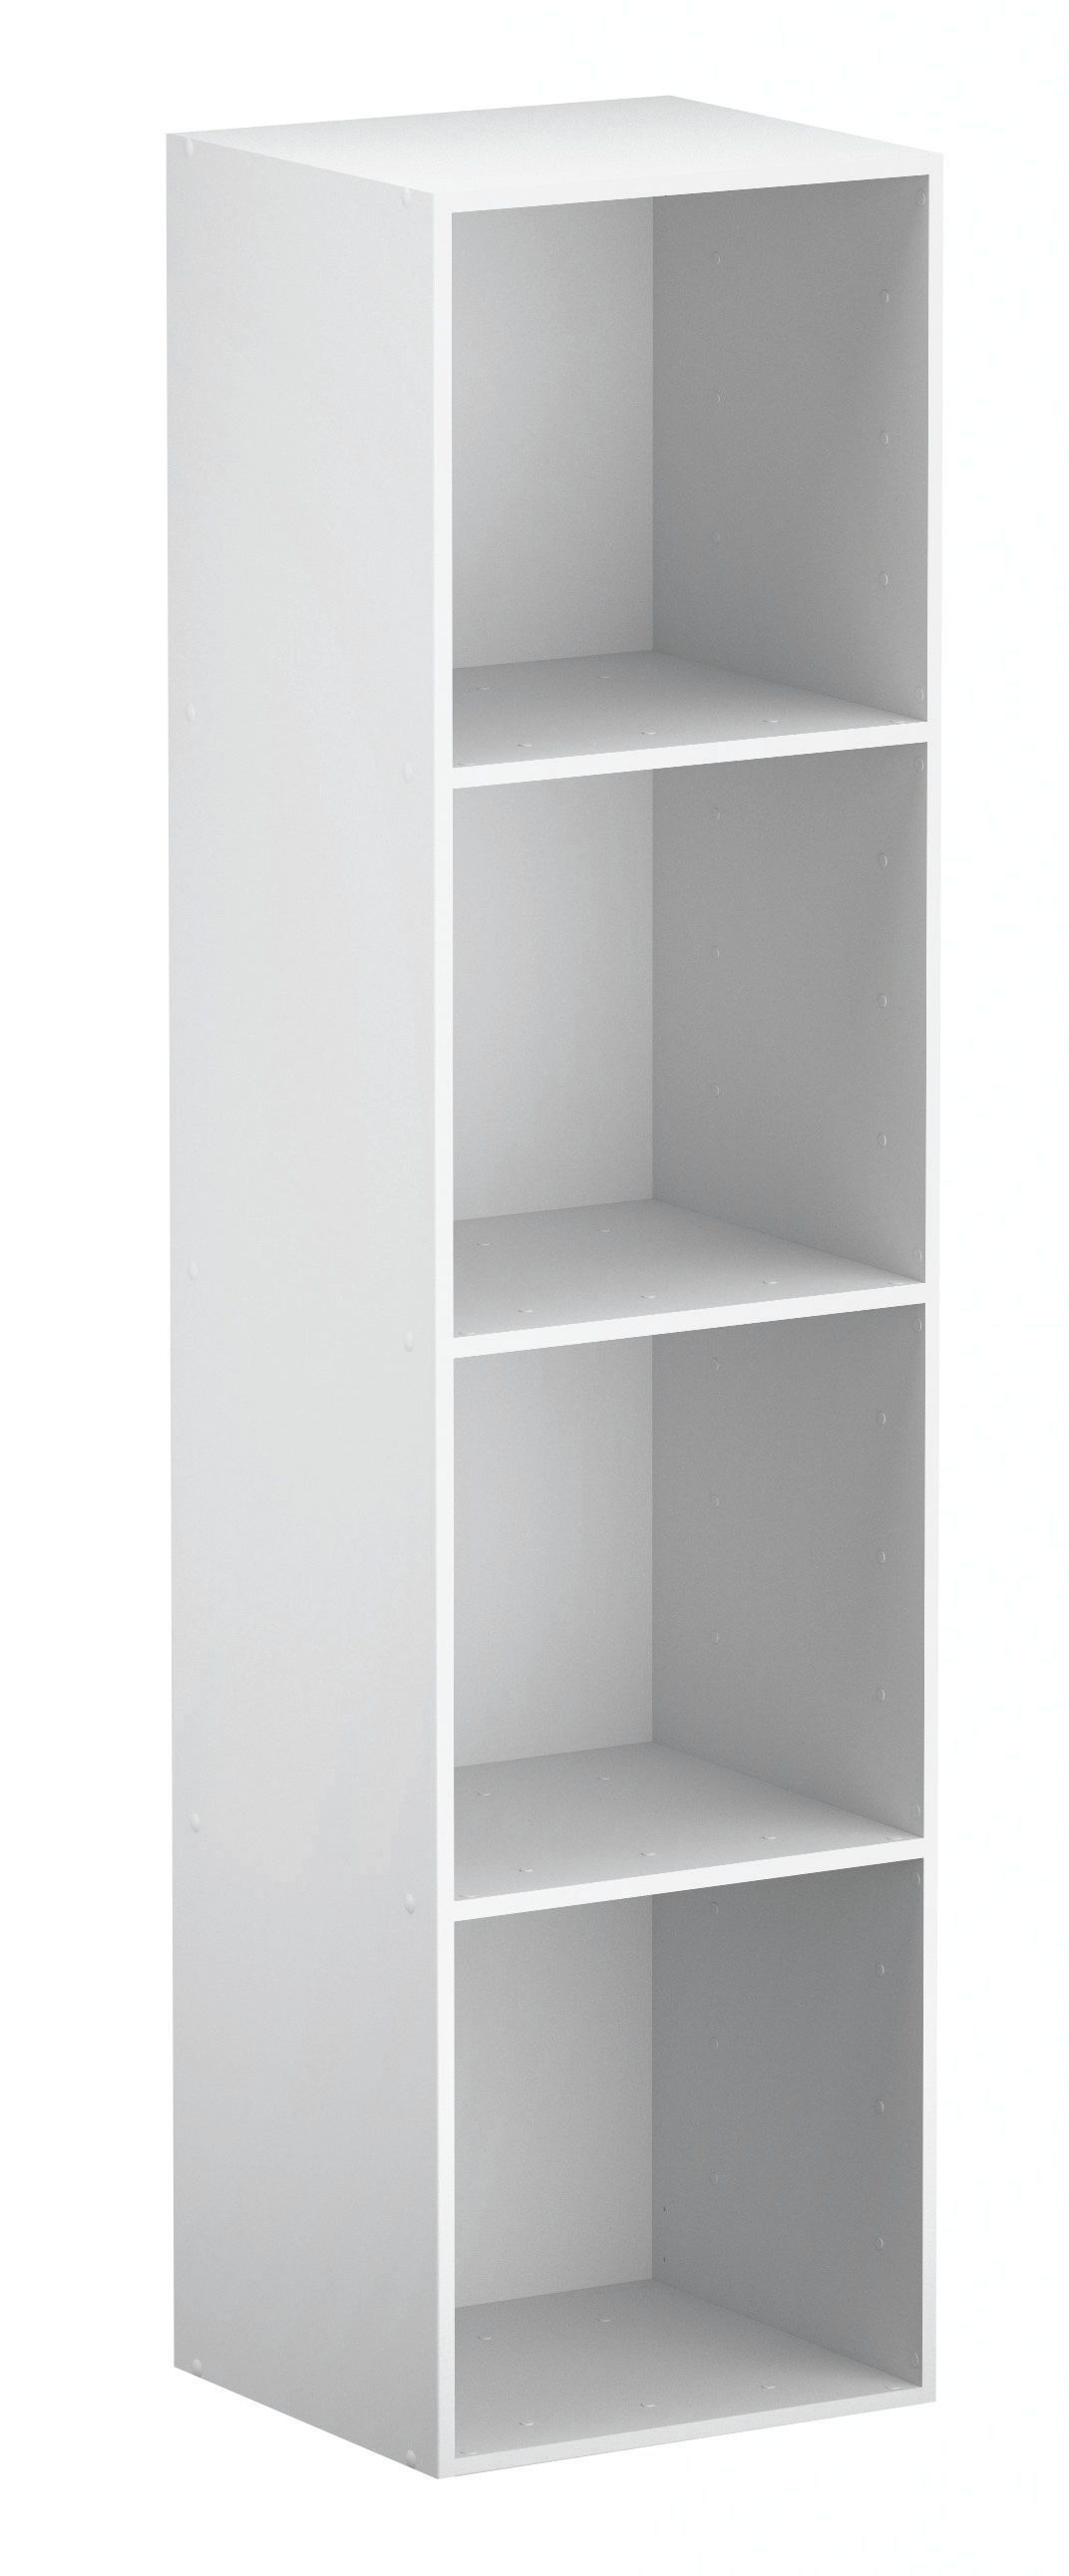 Form Konnect White 4 Cube Shelving Unit H 1372mm W 352mm Departments Diy At B Q